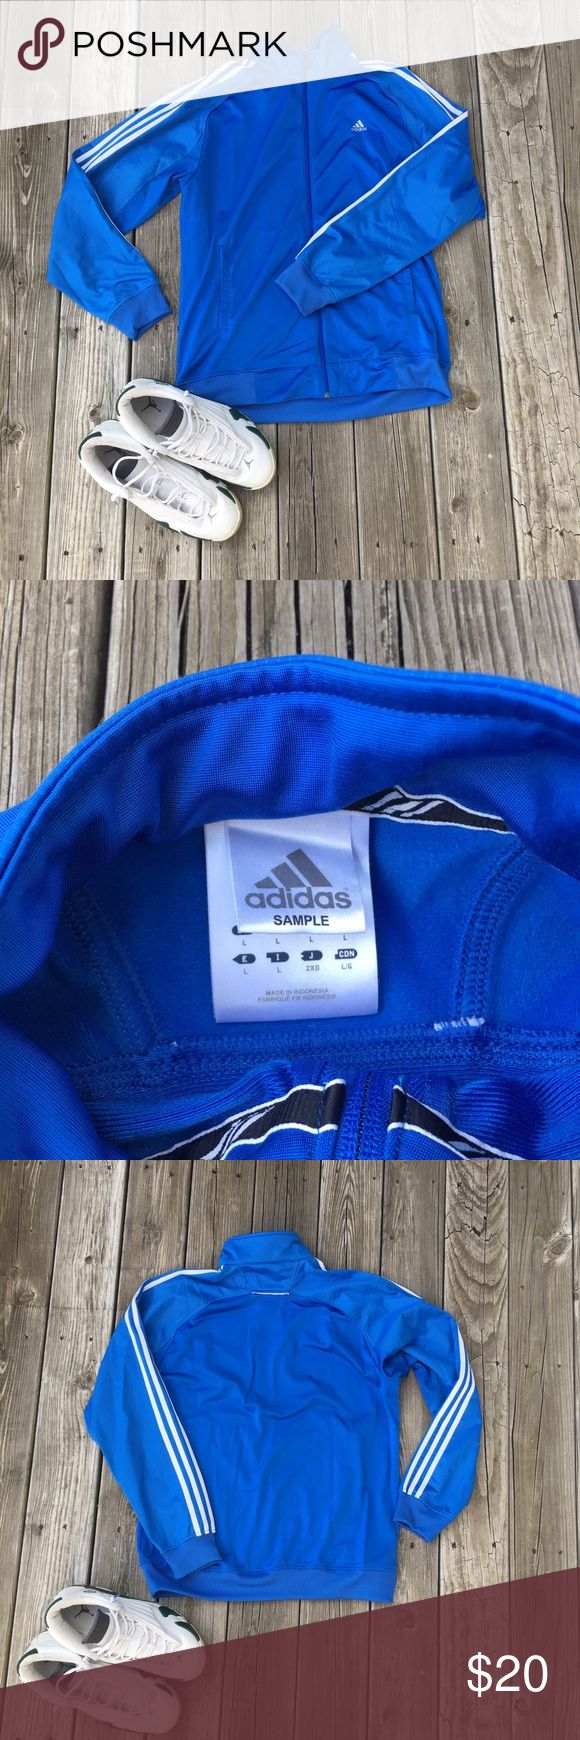 Adidas Bright Blue Zip Up Track Jacket Barely worn, in great condition.  Bundle and save! Make me a reasonable offer, I'm willing to negotiate! adidas Jackets & Coats